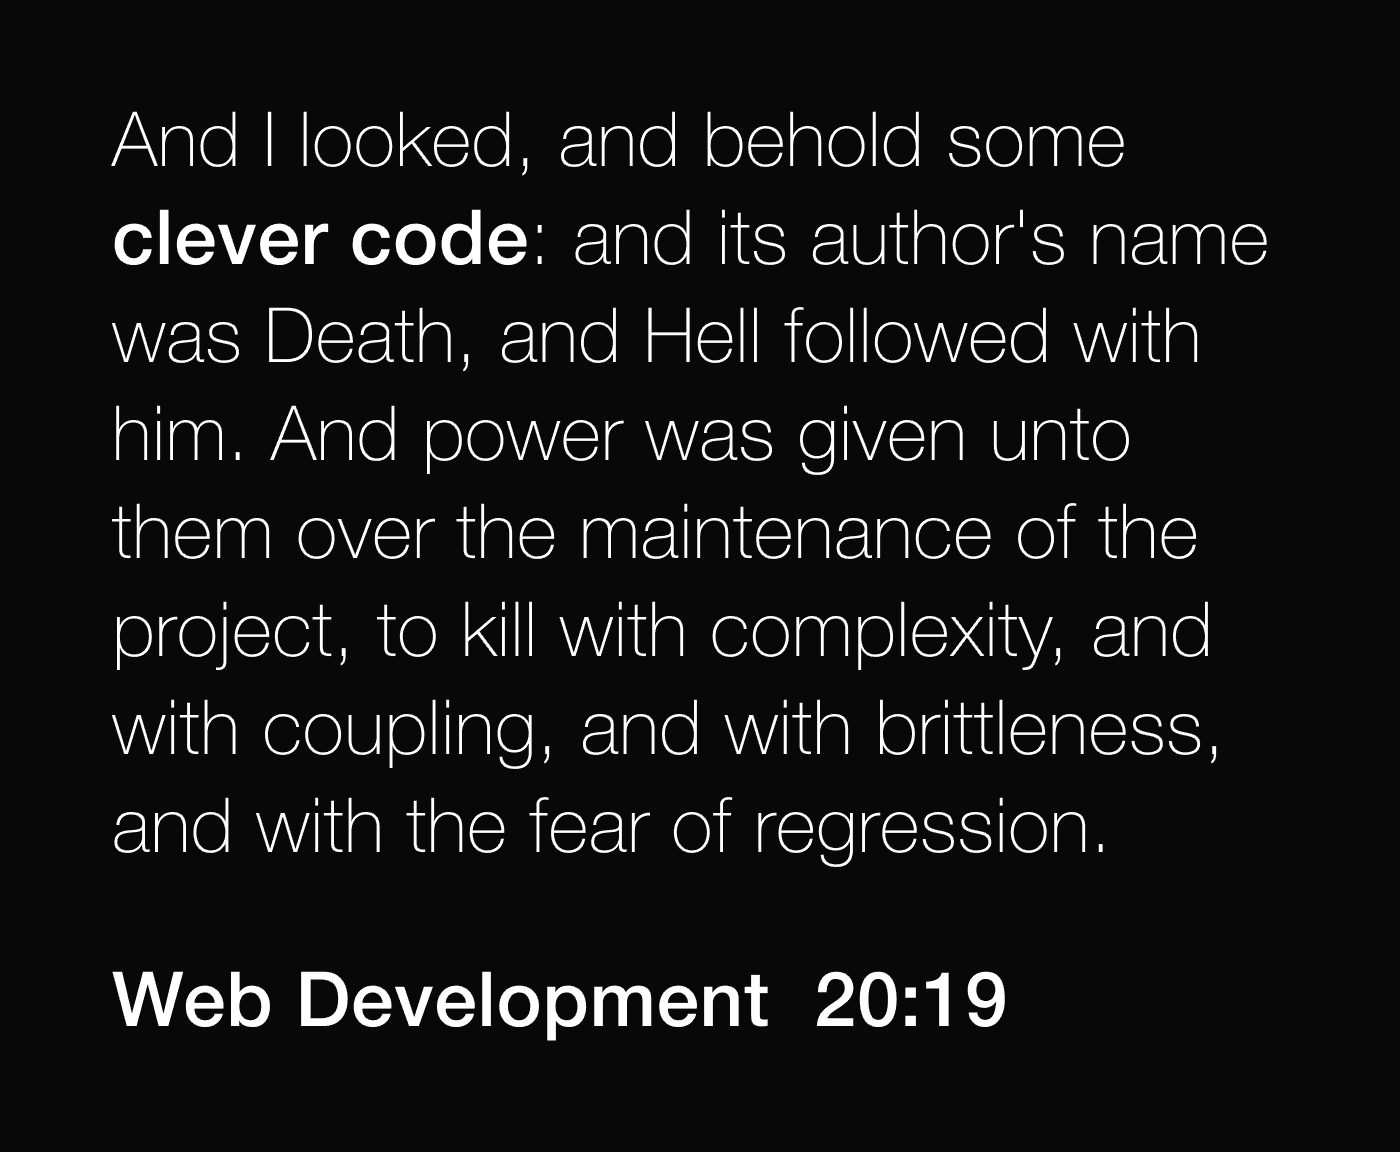 And I looked, and behold some clever code: and its author's name was Death, and Hell followed with him. And power was given unto them over the maintenance of the project, to kill with complexity, and with coupling, and with brittleness, and with the fear of regression. -- Web Development 20:19